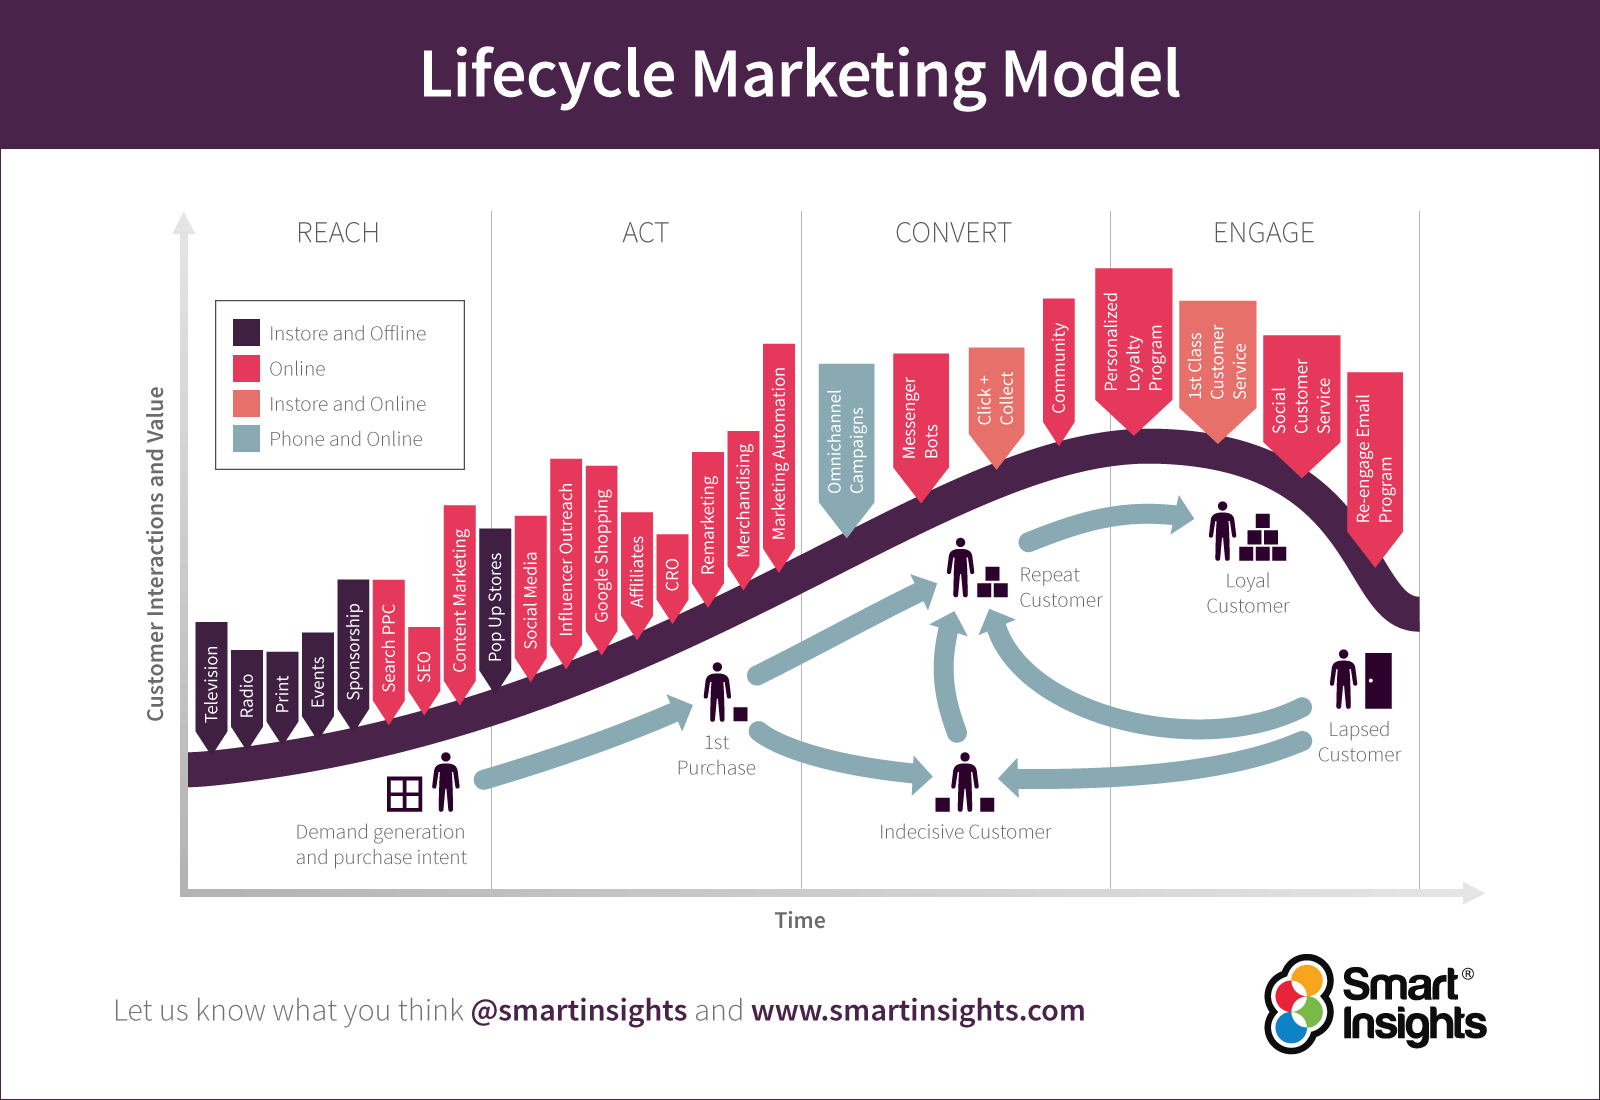 Lifecycle Marketing Model